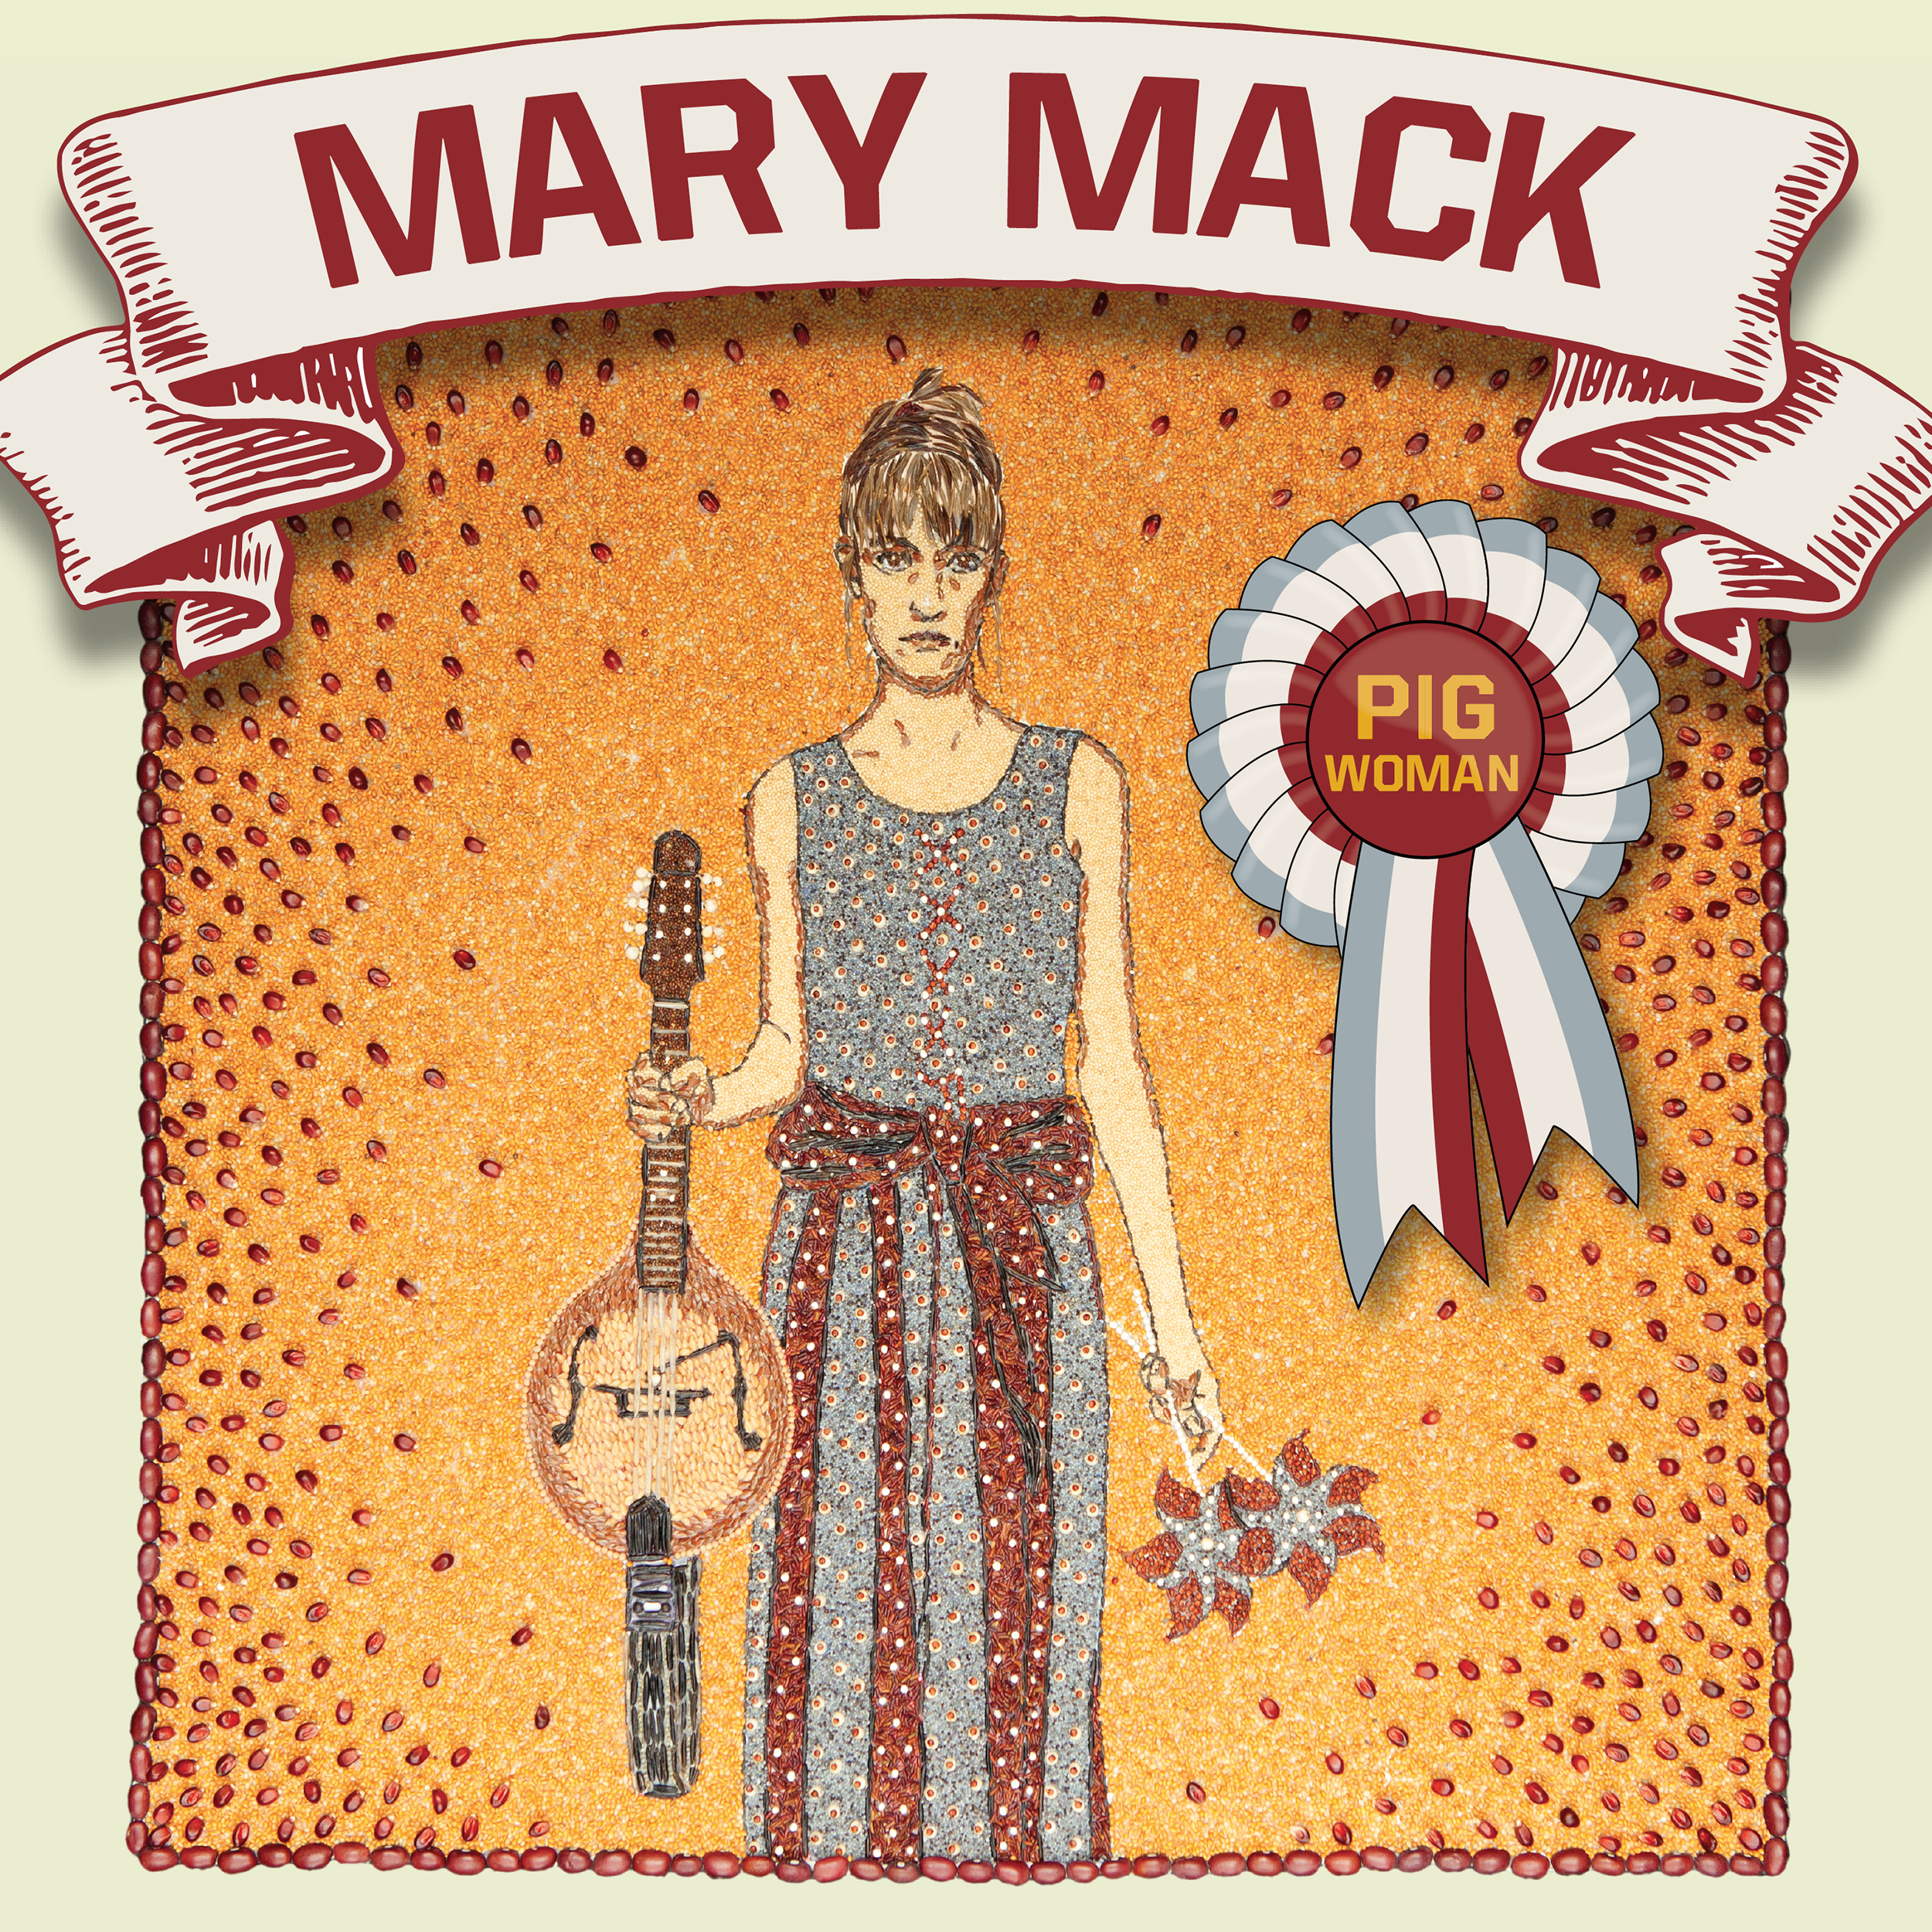 Comedy News: Pig Woman from Mary Mack Out Oct. 9 from Stand Up! Records